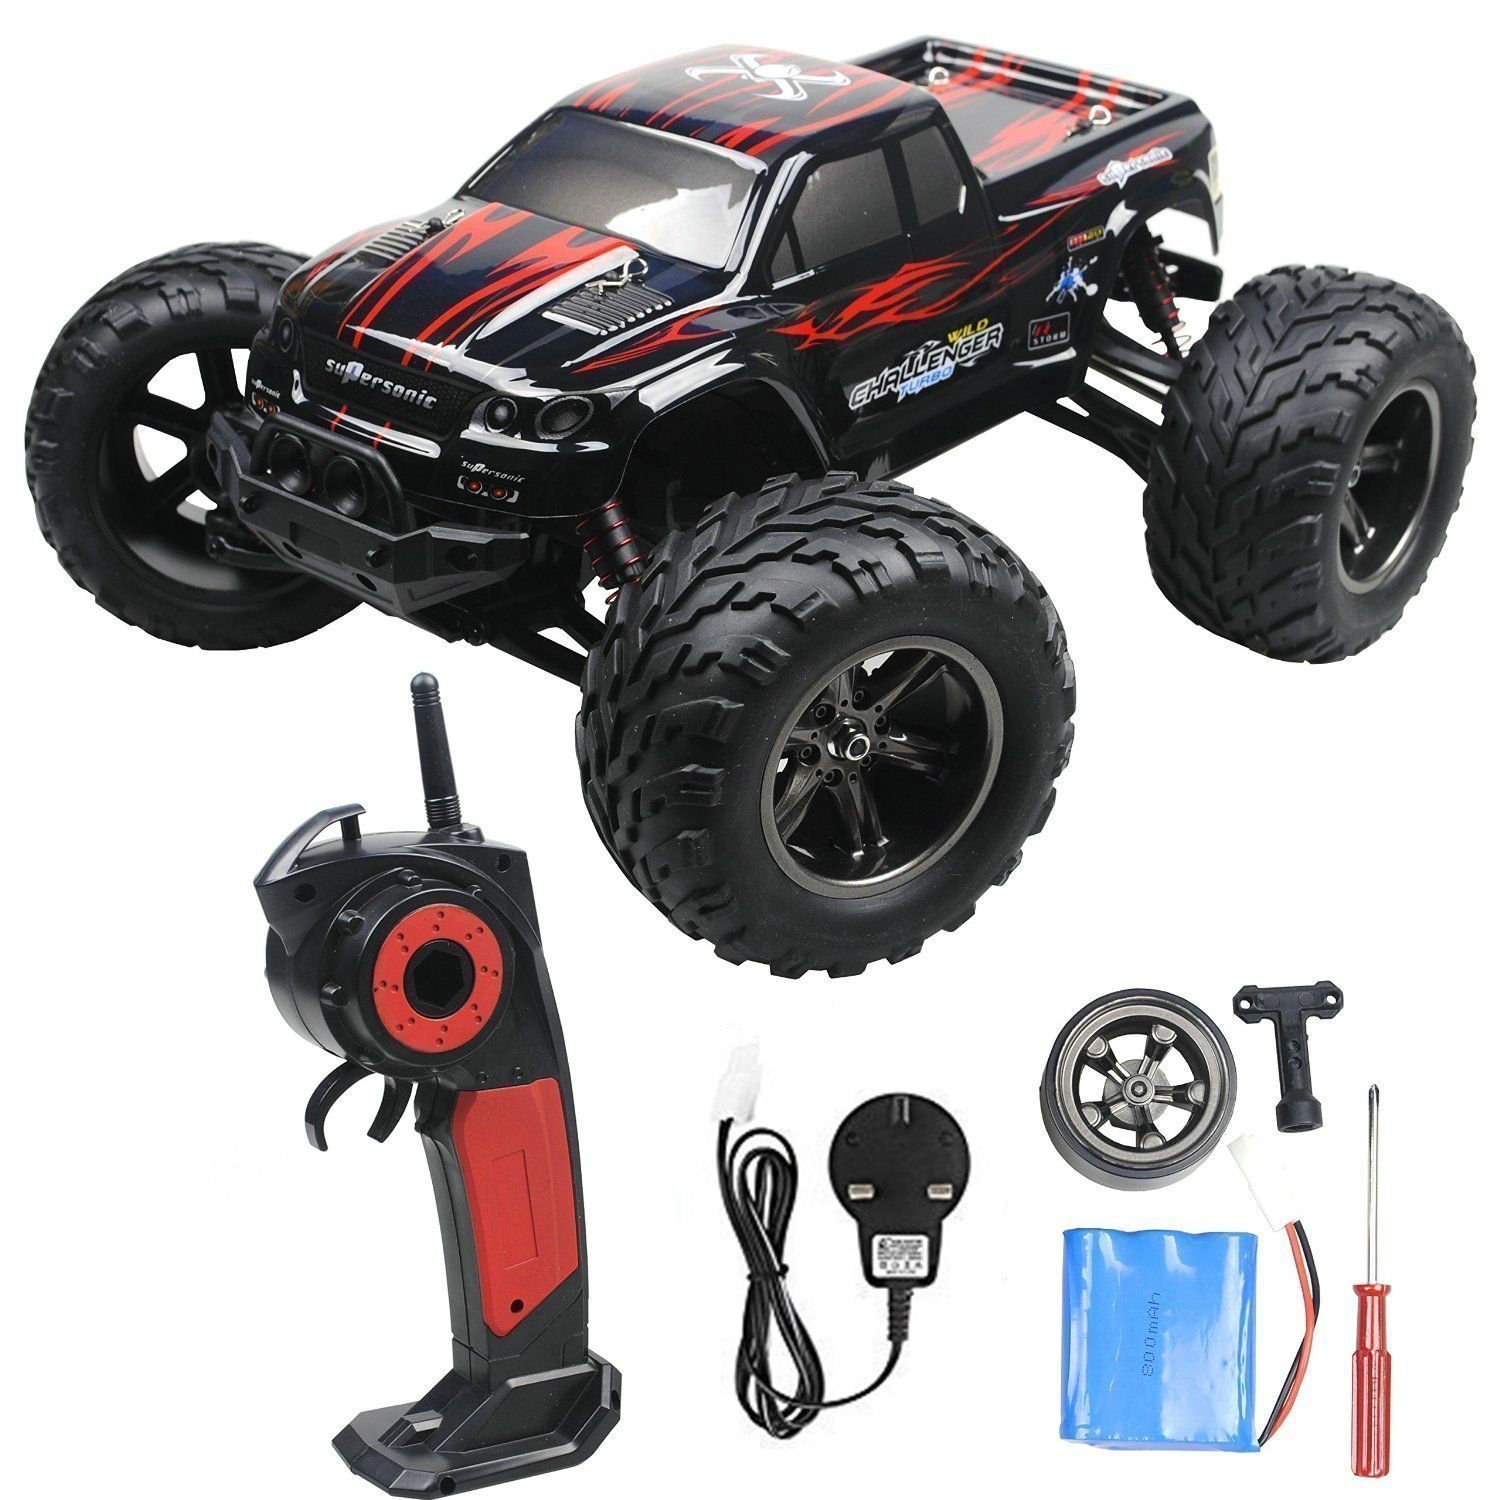 2 4GHz 1 12 Remote Controlled Cars RC Monster Truck Up to 50MPH High Speed and with 100 Meter Control Range Red Updated Amazon Toys & Games